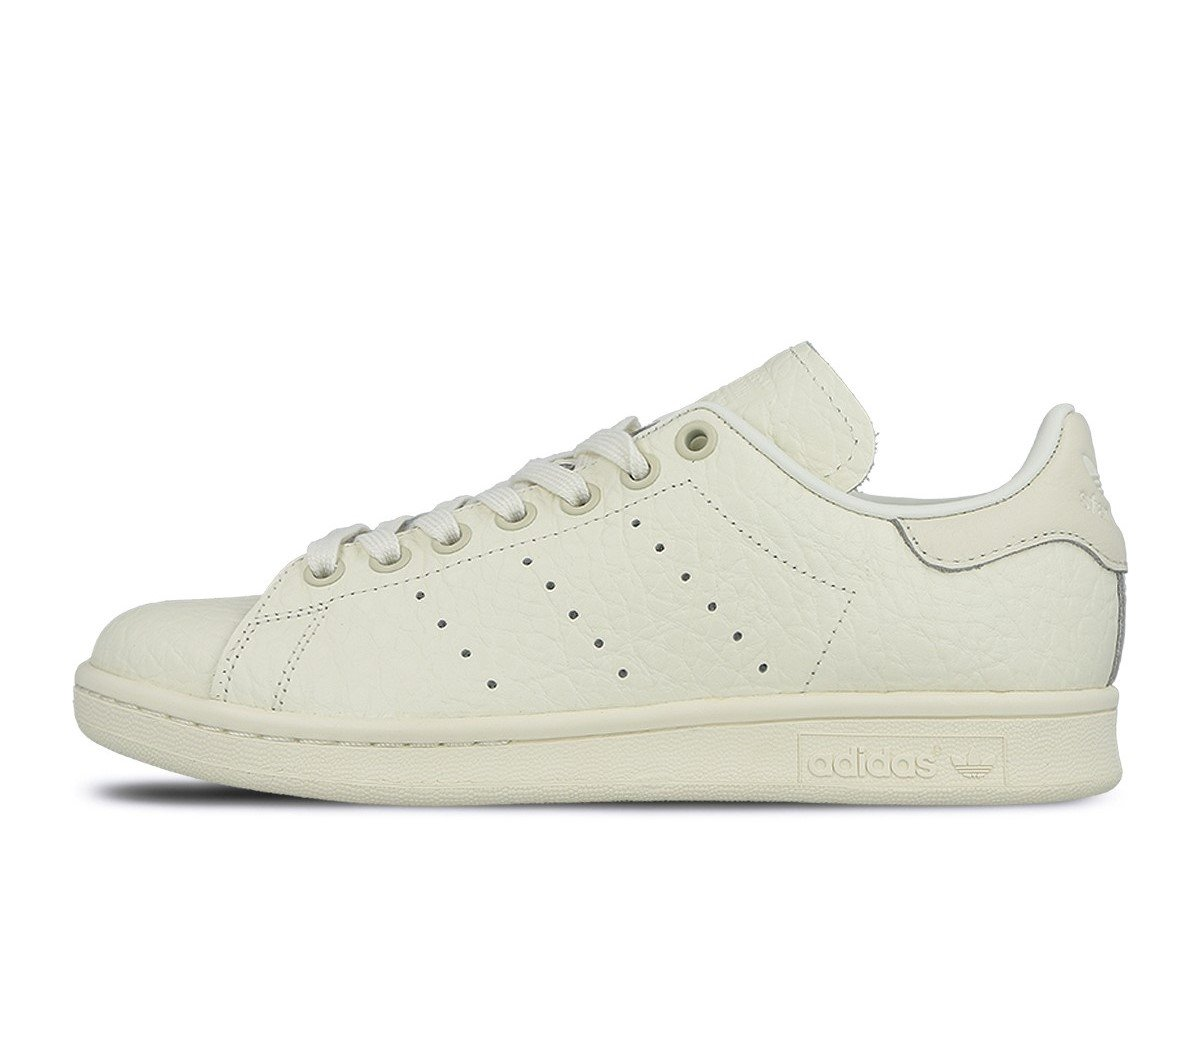 adidas Originals Men's Stan Smith Vulc Shoes B07DP9CGFN 13 D(M) US|Off White/Off White/Off White